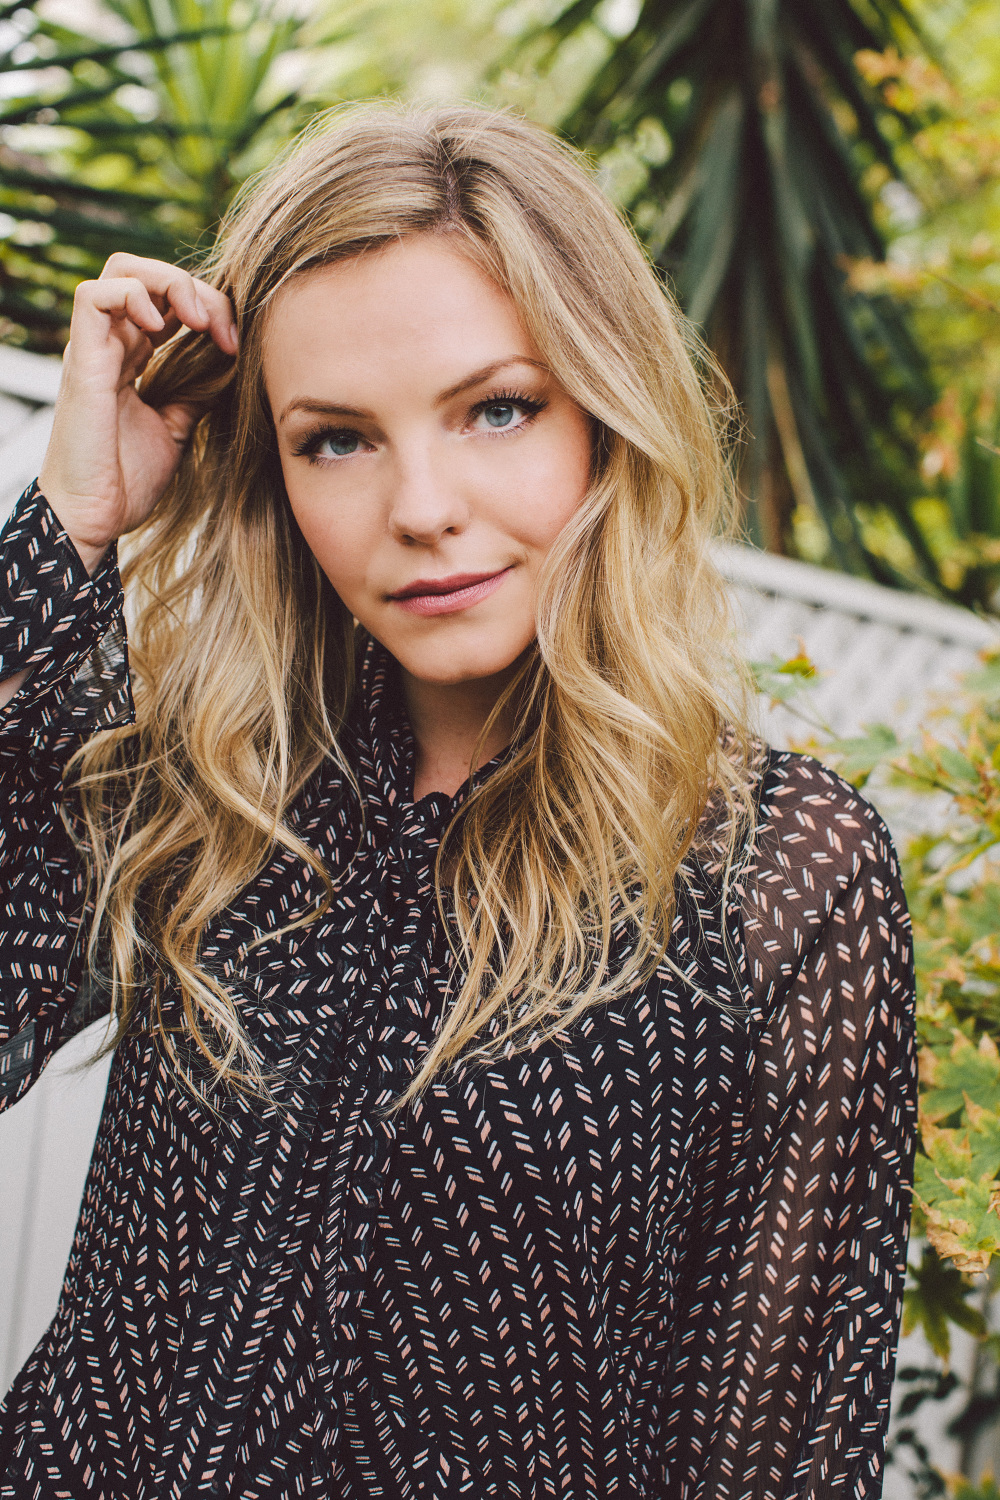 eloise mumford instagrameloise mumford net worth, eloise mumford height, eloise mumford twitter, eloise mumford pictures, eloise mumford instagram, eloise mumford filmography, eloise mumford fansite, eloise mumford tumblr, eloise mumford and dakota johnson, eloise mumford, eloise mumford facebook, eloise mumford boyfriend, eloise mumford imdb, eloise mumford measurements, eloise mumford 50 shades of grey, eloise mumford hallmark, eloise mumford fifty shades, eloise mumford bikini